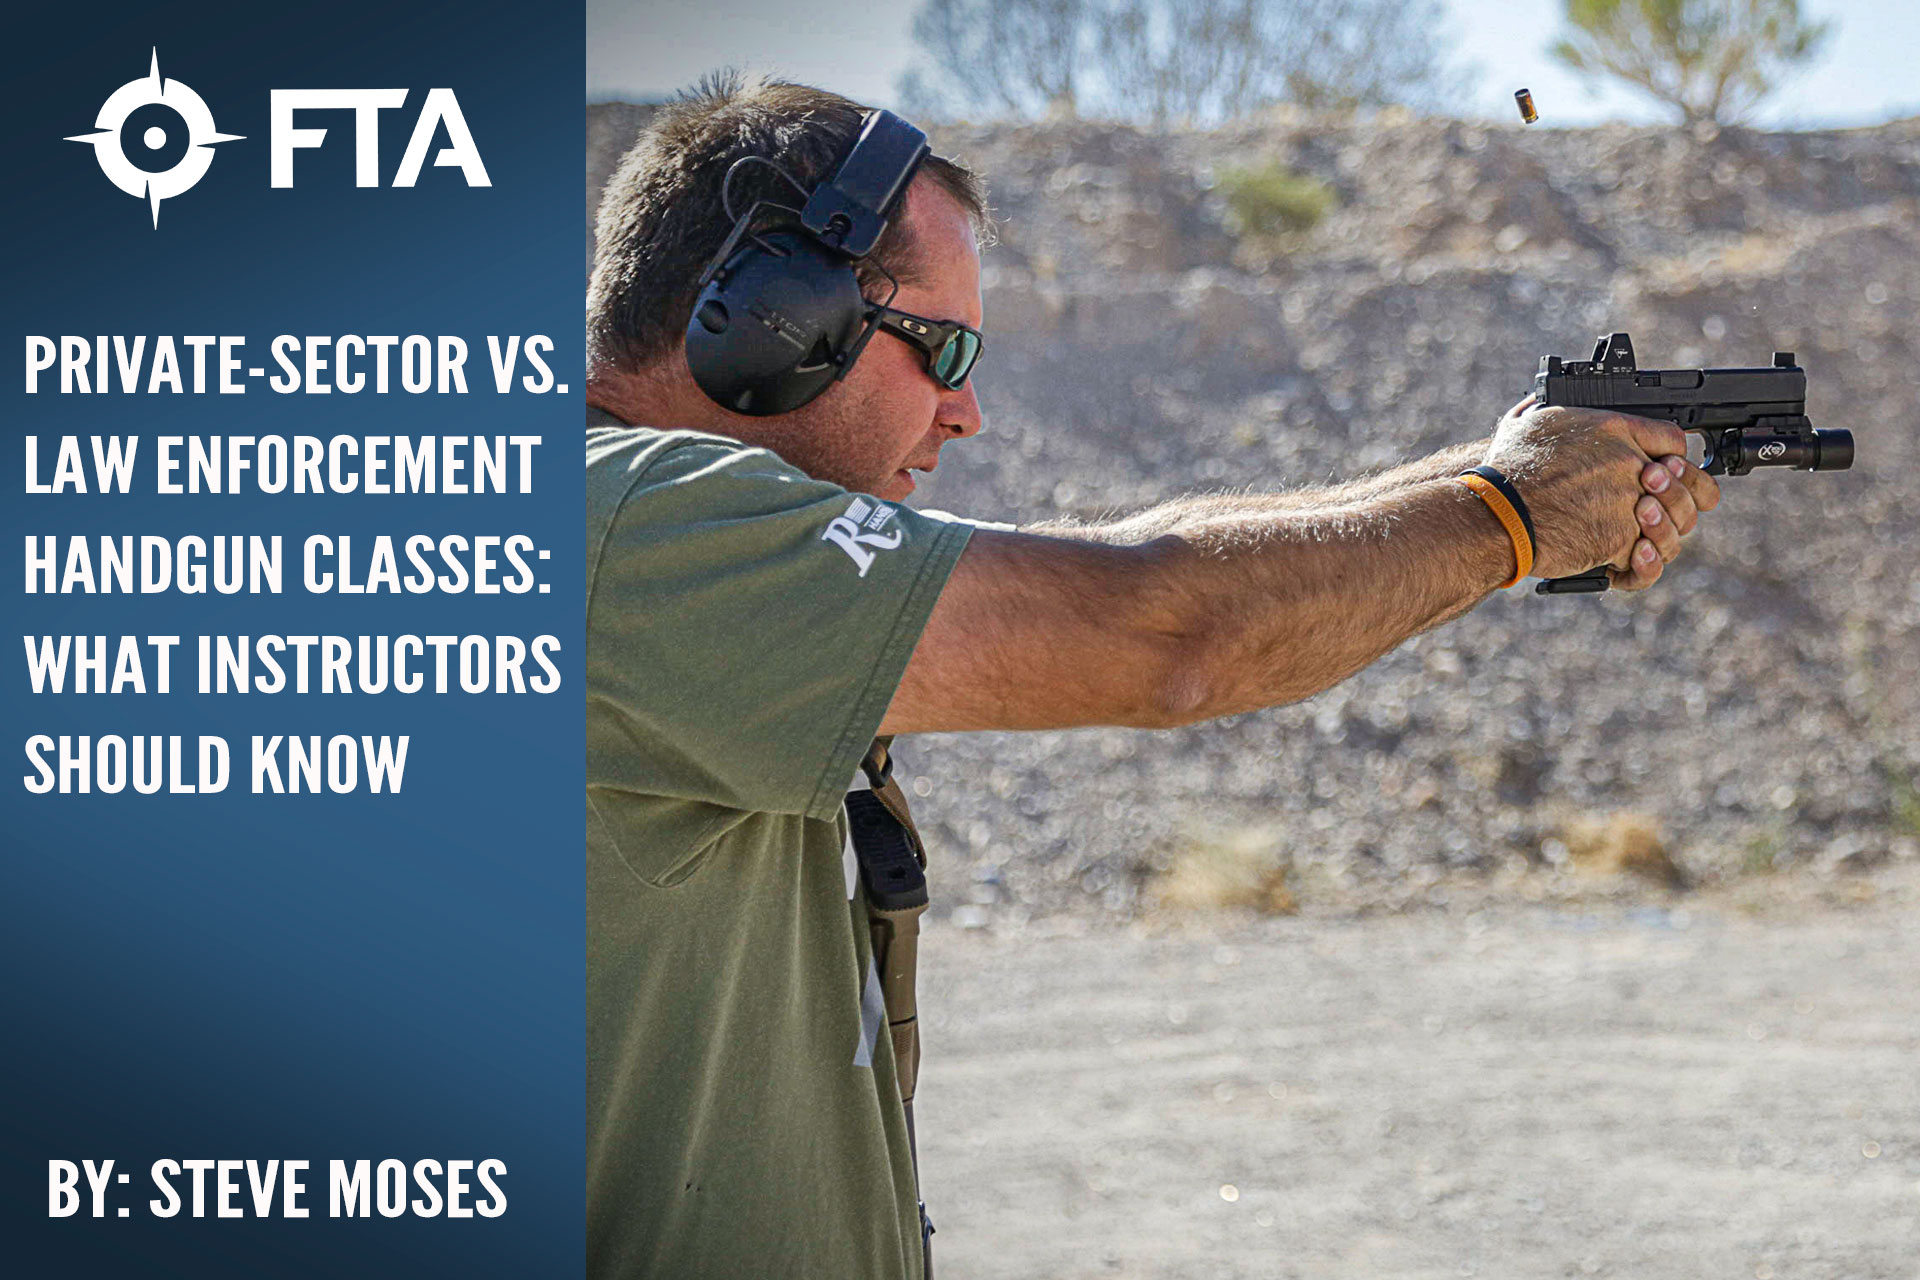 PRIVATE-SECTOR VS. LAW ENFORCEMENT HANDGUN CLASSES: WHAT INSTRUCTORS SHOULD KNOW